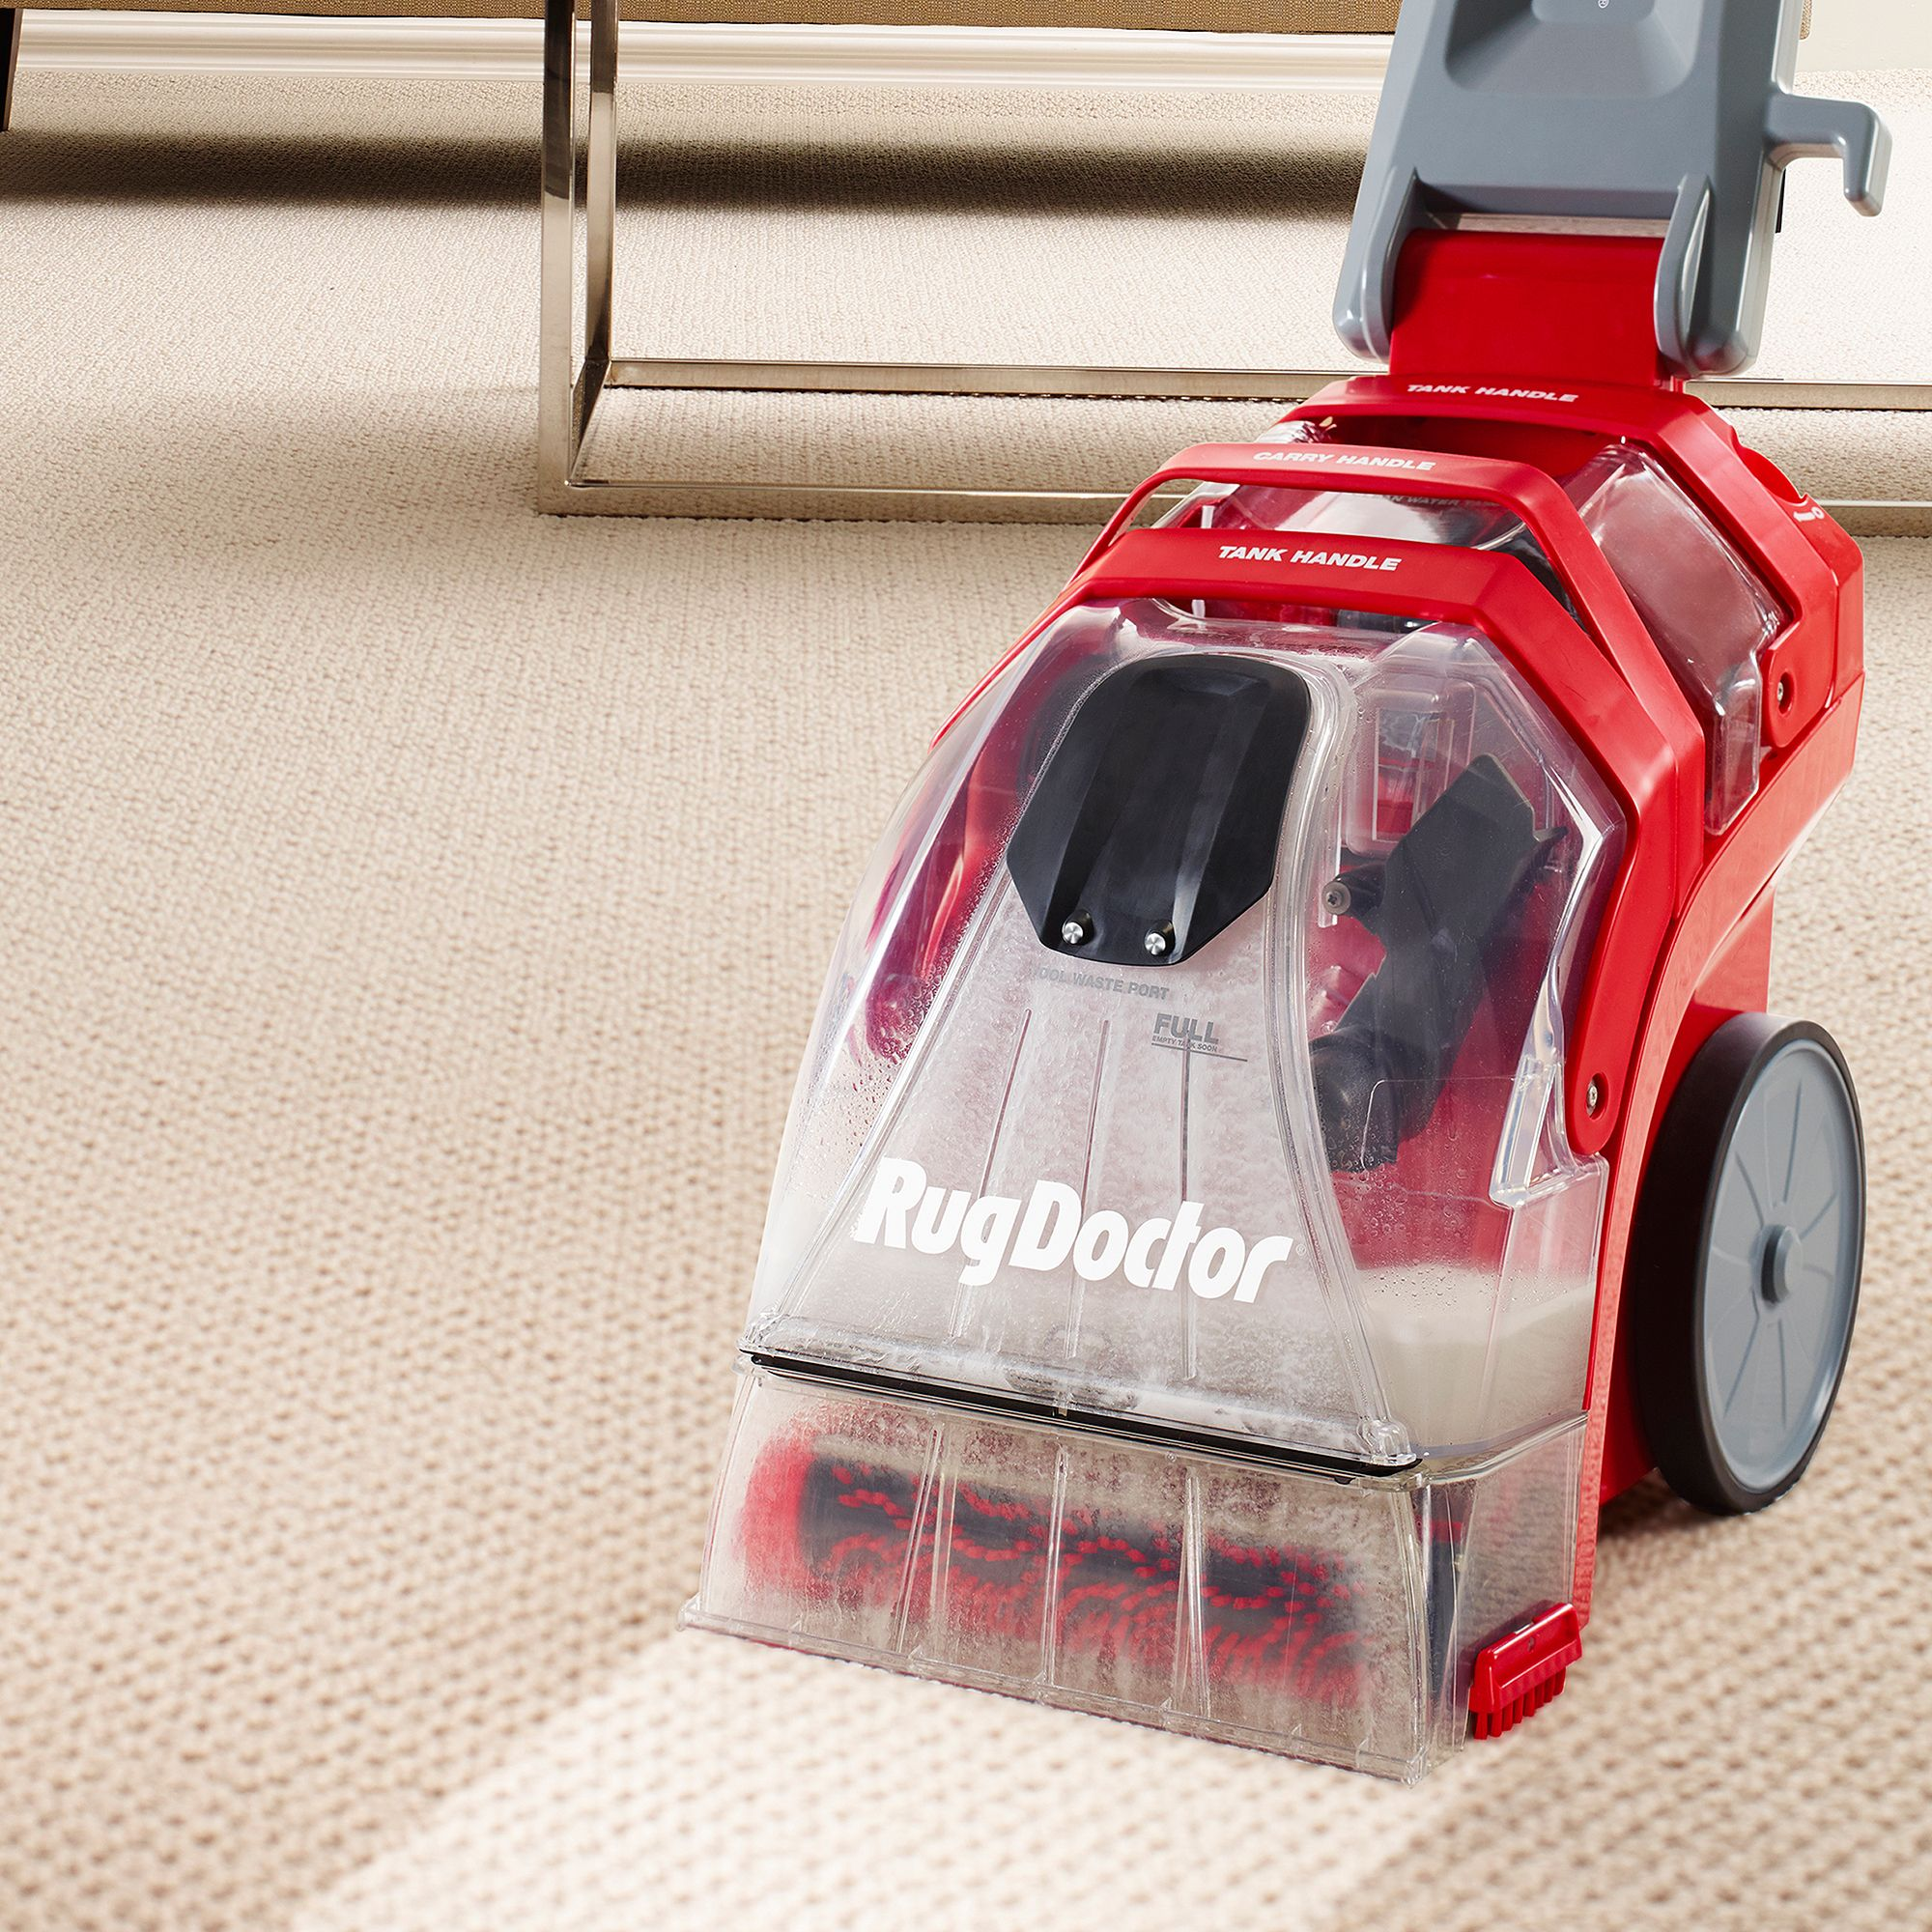 doctor carpet rug cleaner mighty costco pro